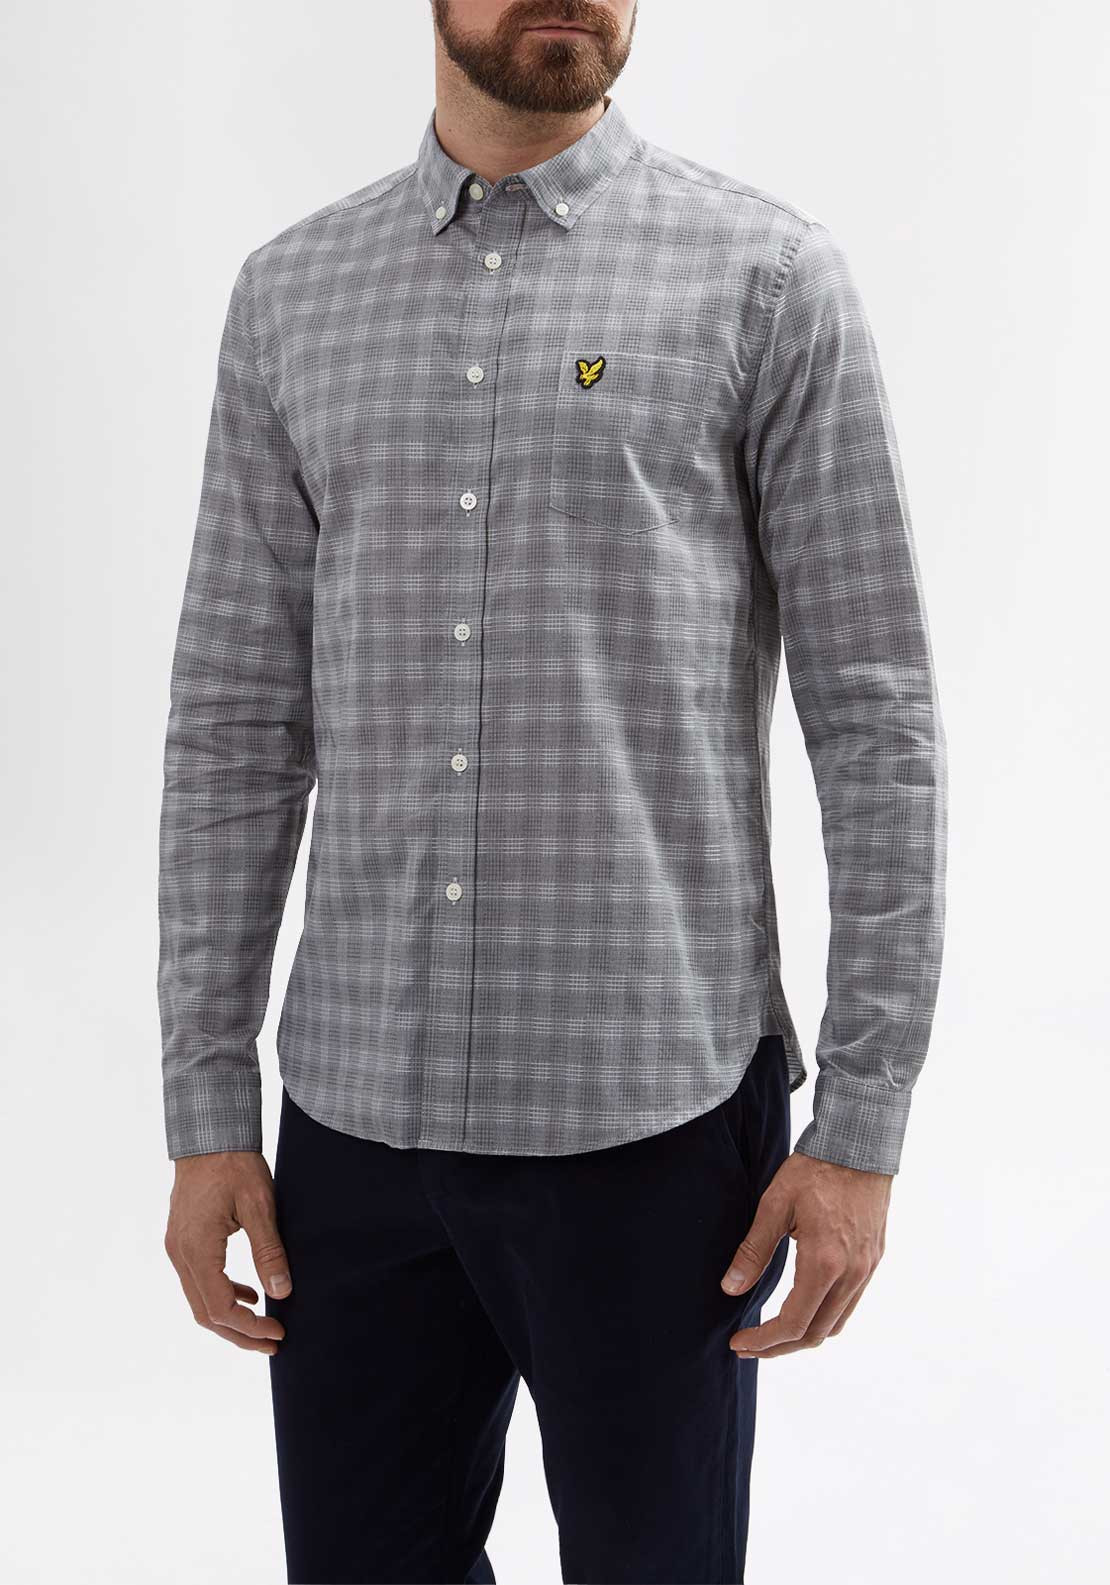 Lyle & Scott Mens Textured Long Sleeved Checked Shirt, Grey